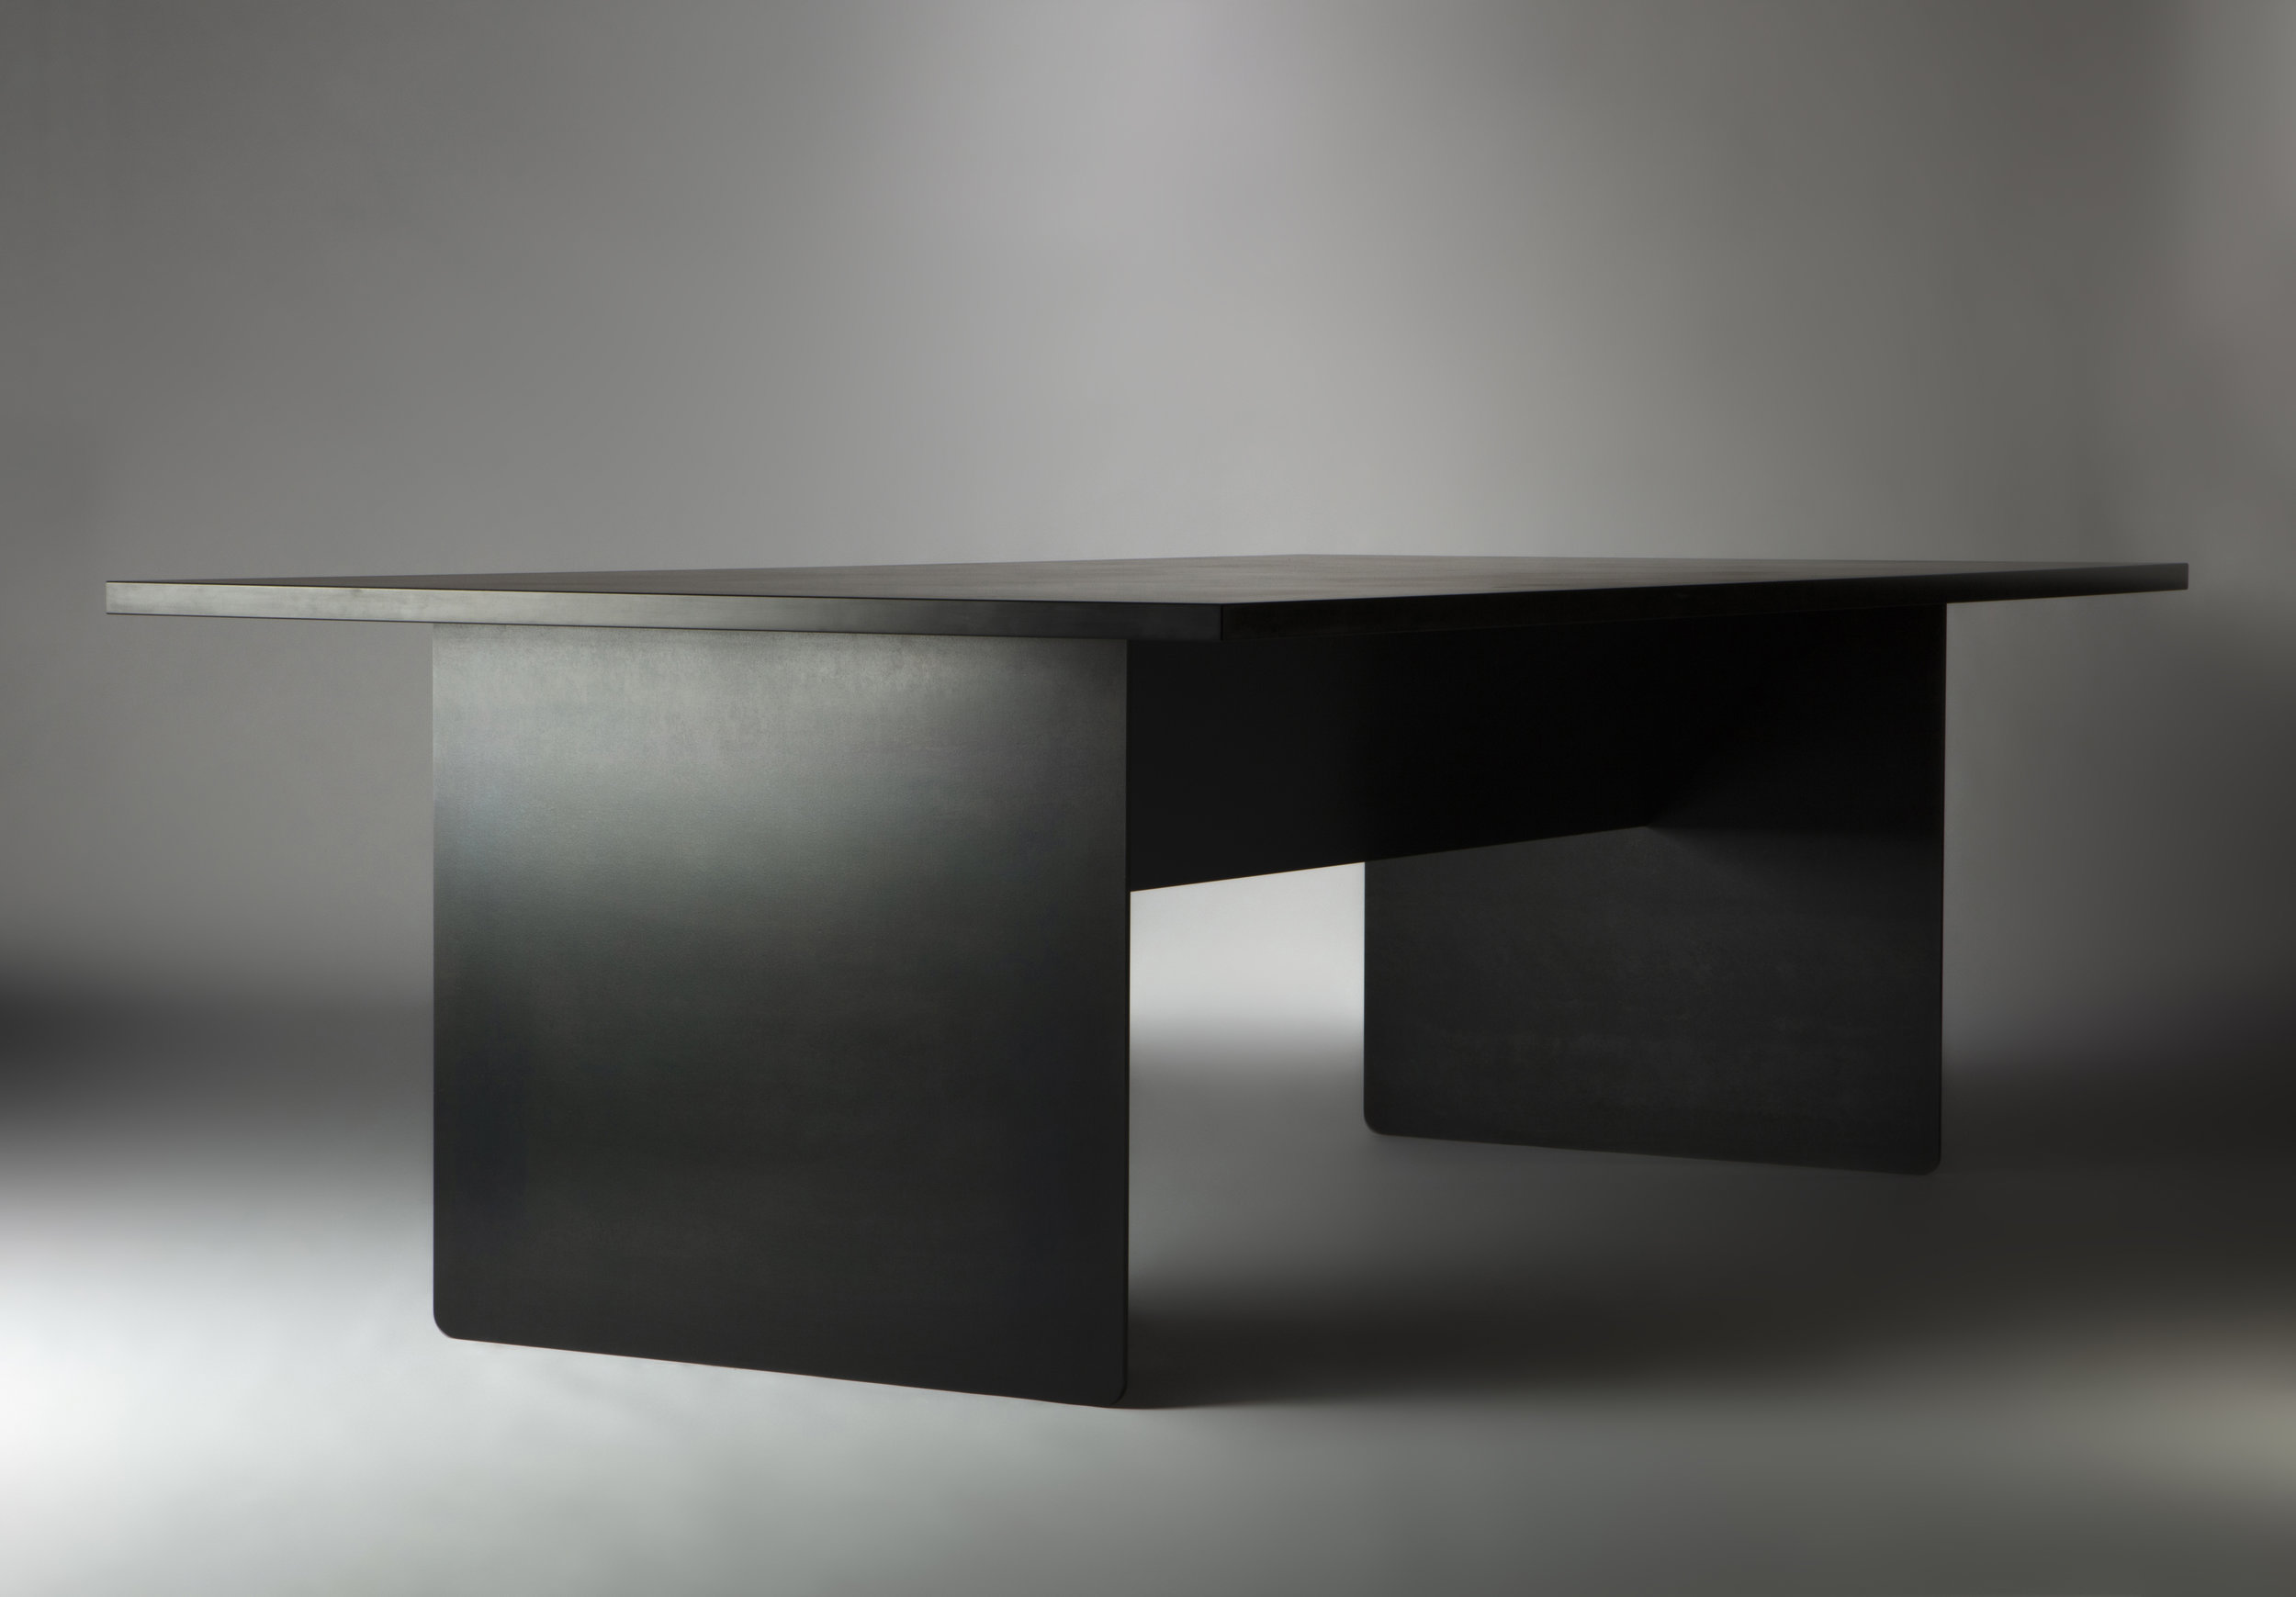 APD Argosy Product Division Marianas Table  Industrial & modern product design for contemporary interiors. We believe in quality, simplicity, craftsmanship, and attention to detail.